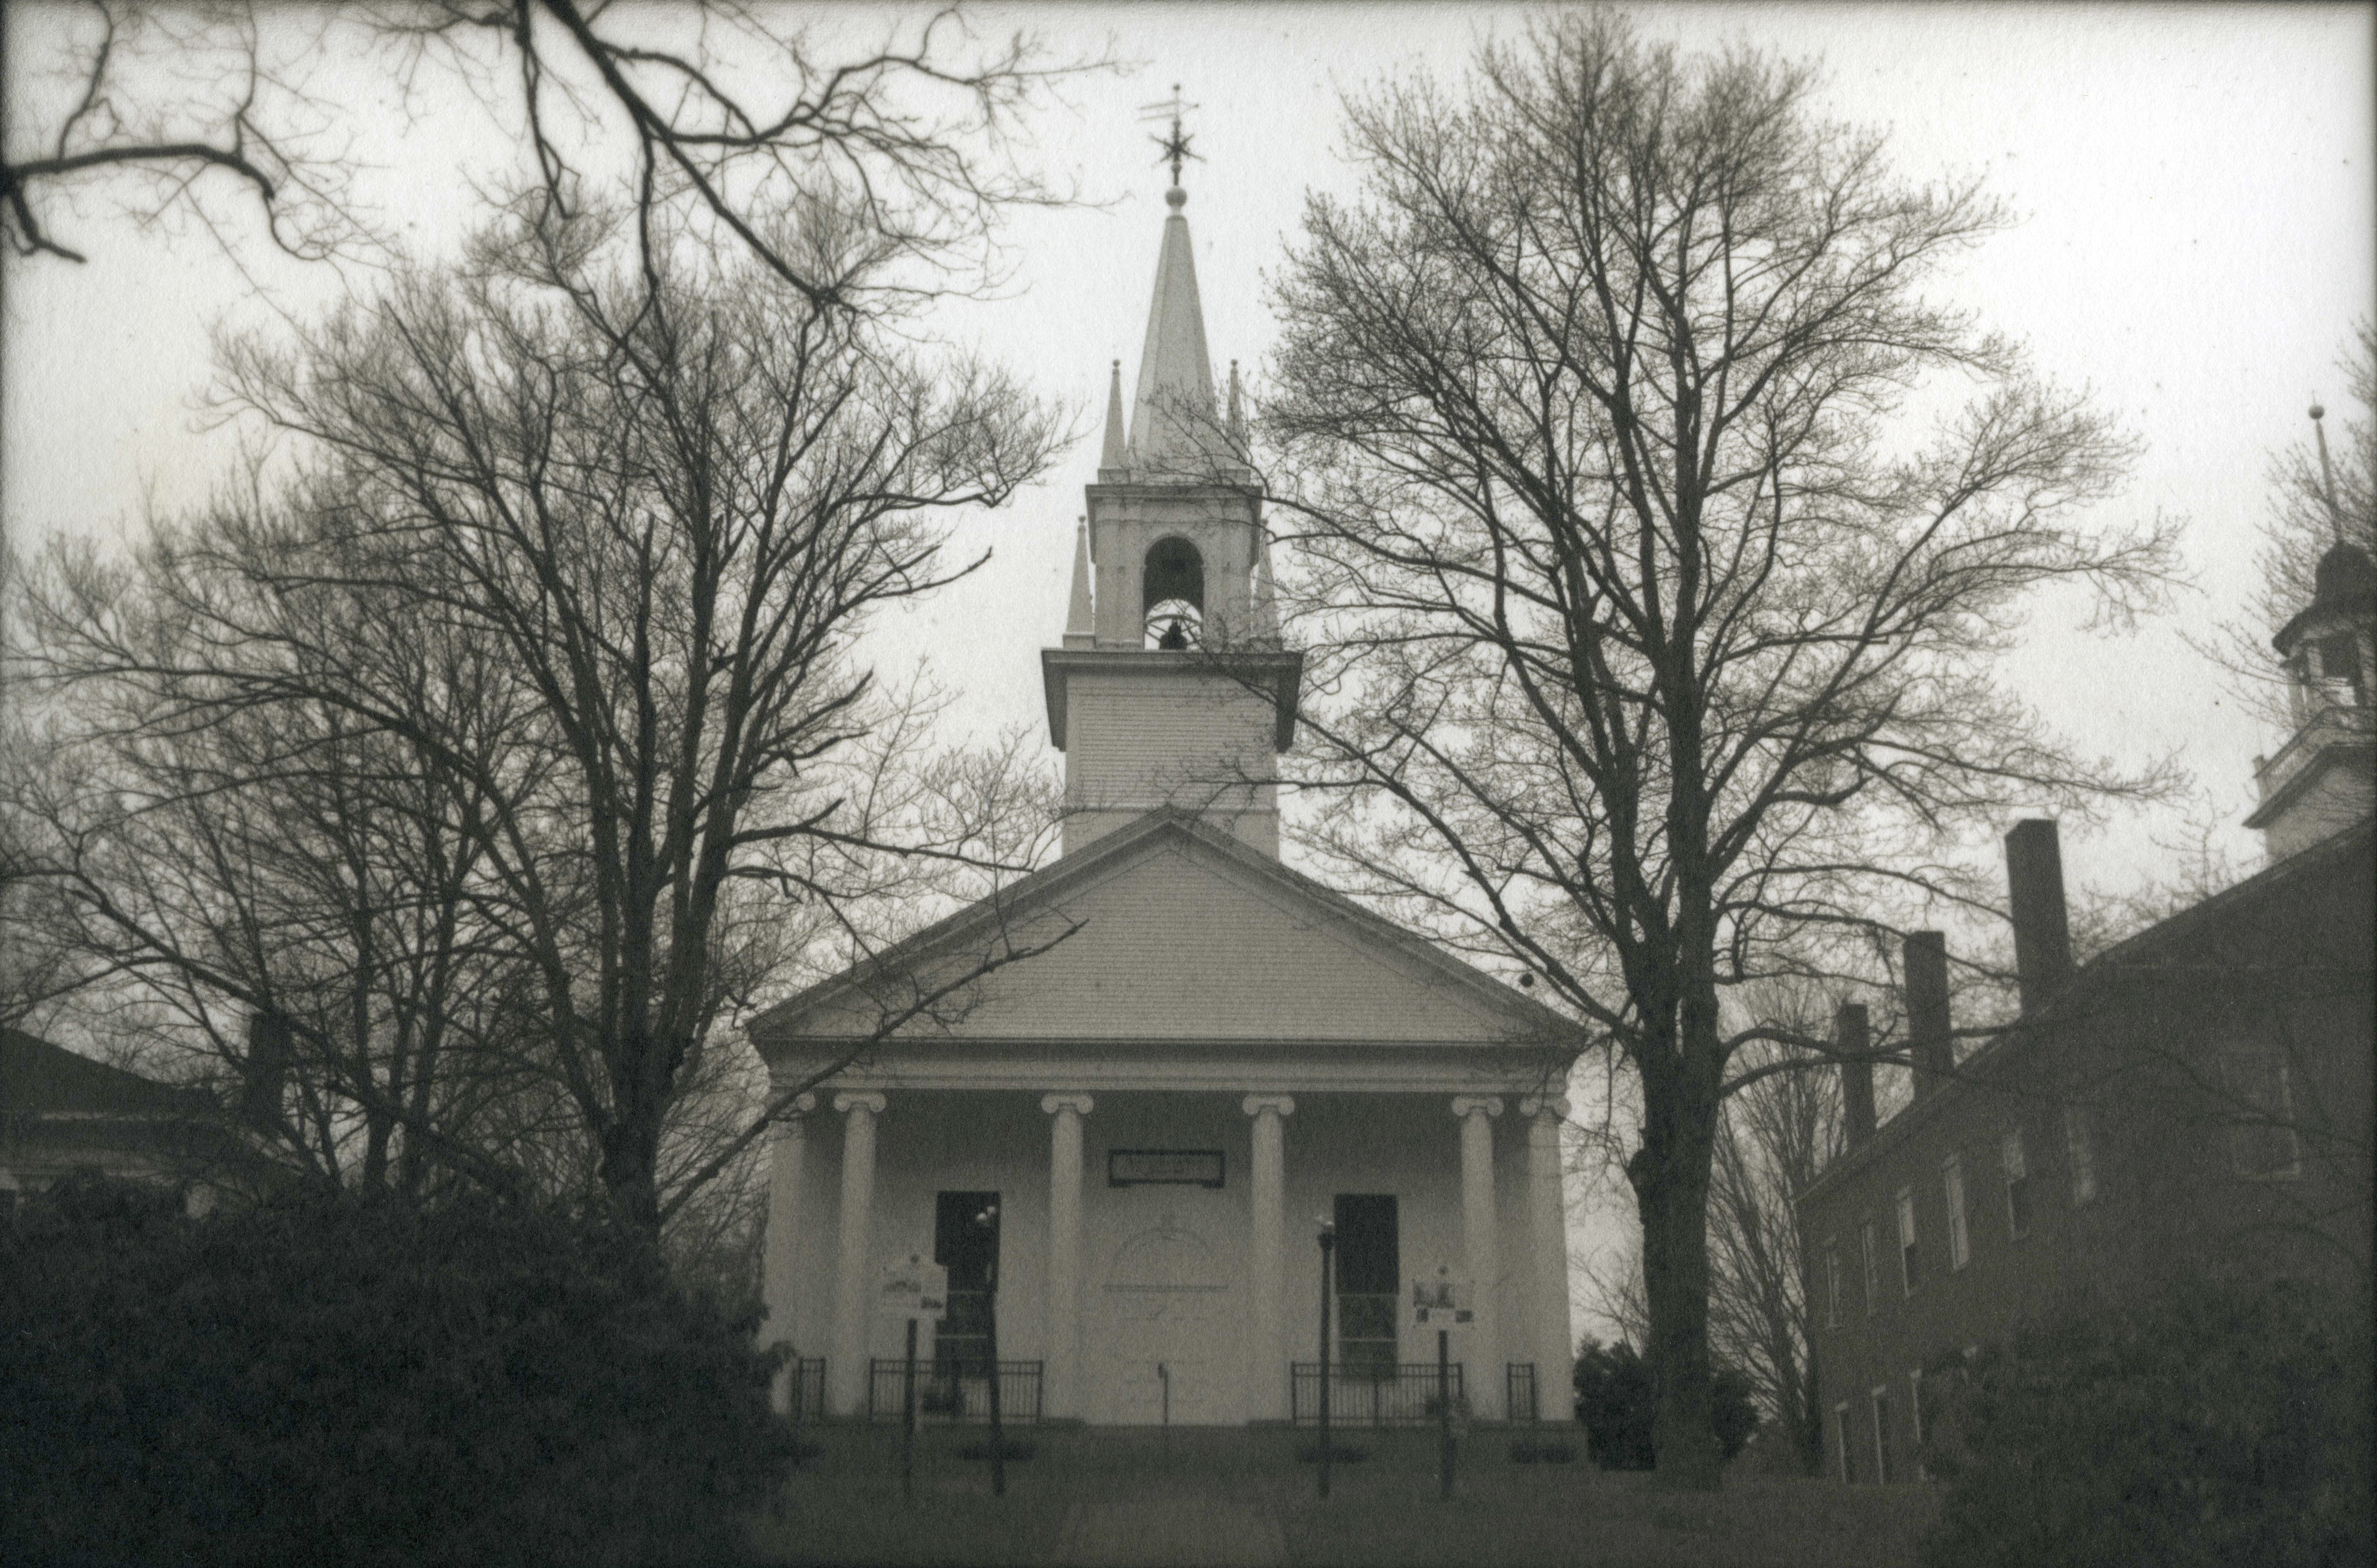 Congregational church, Wiscasset, ME